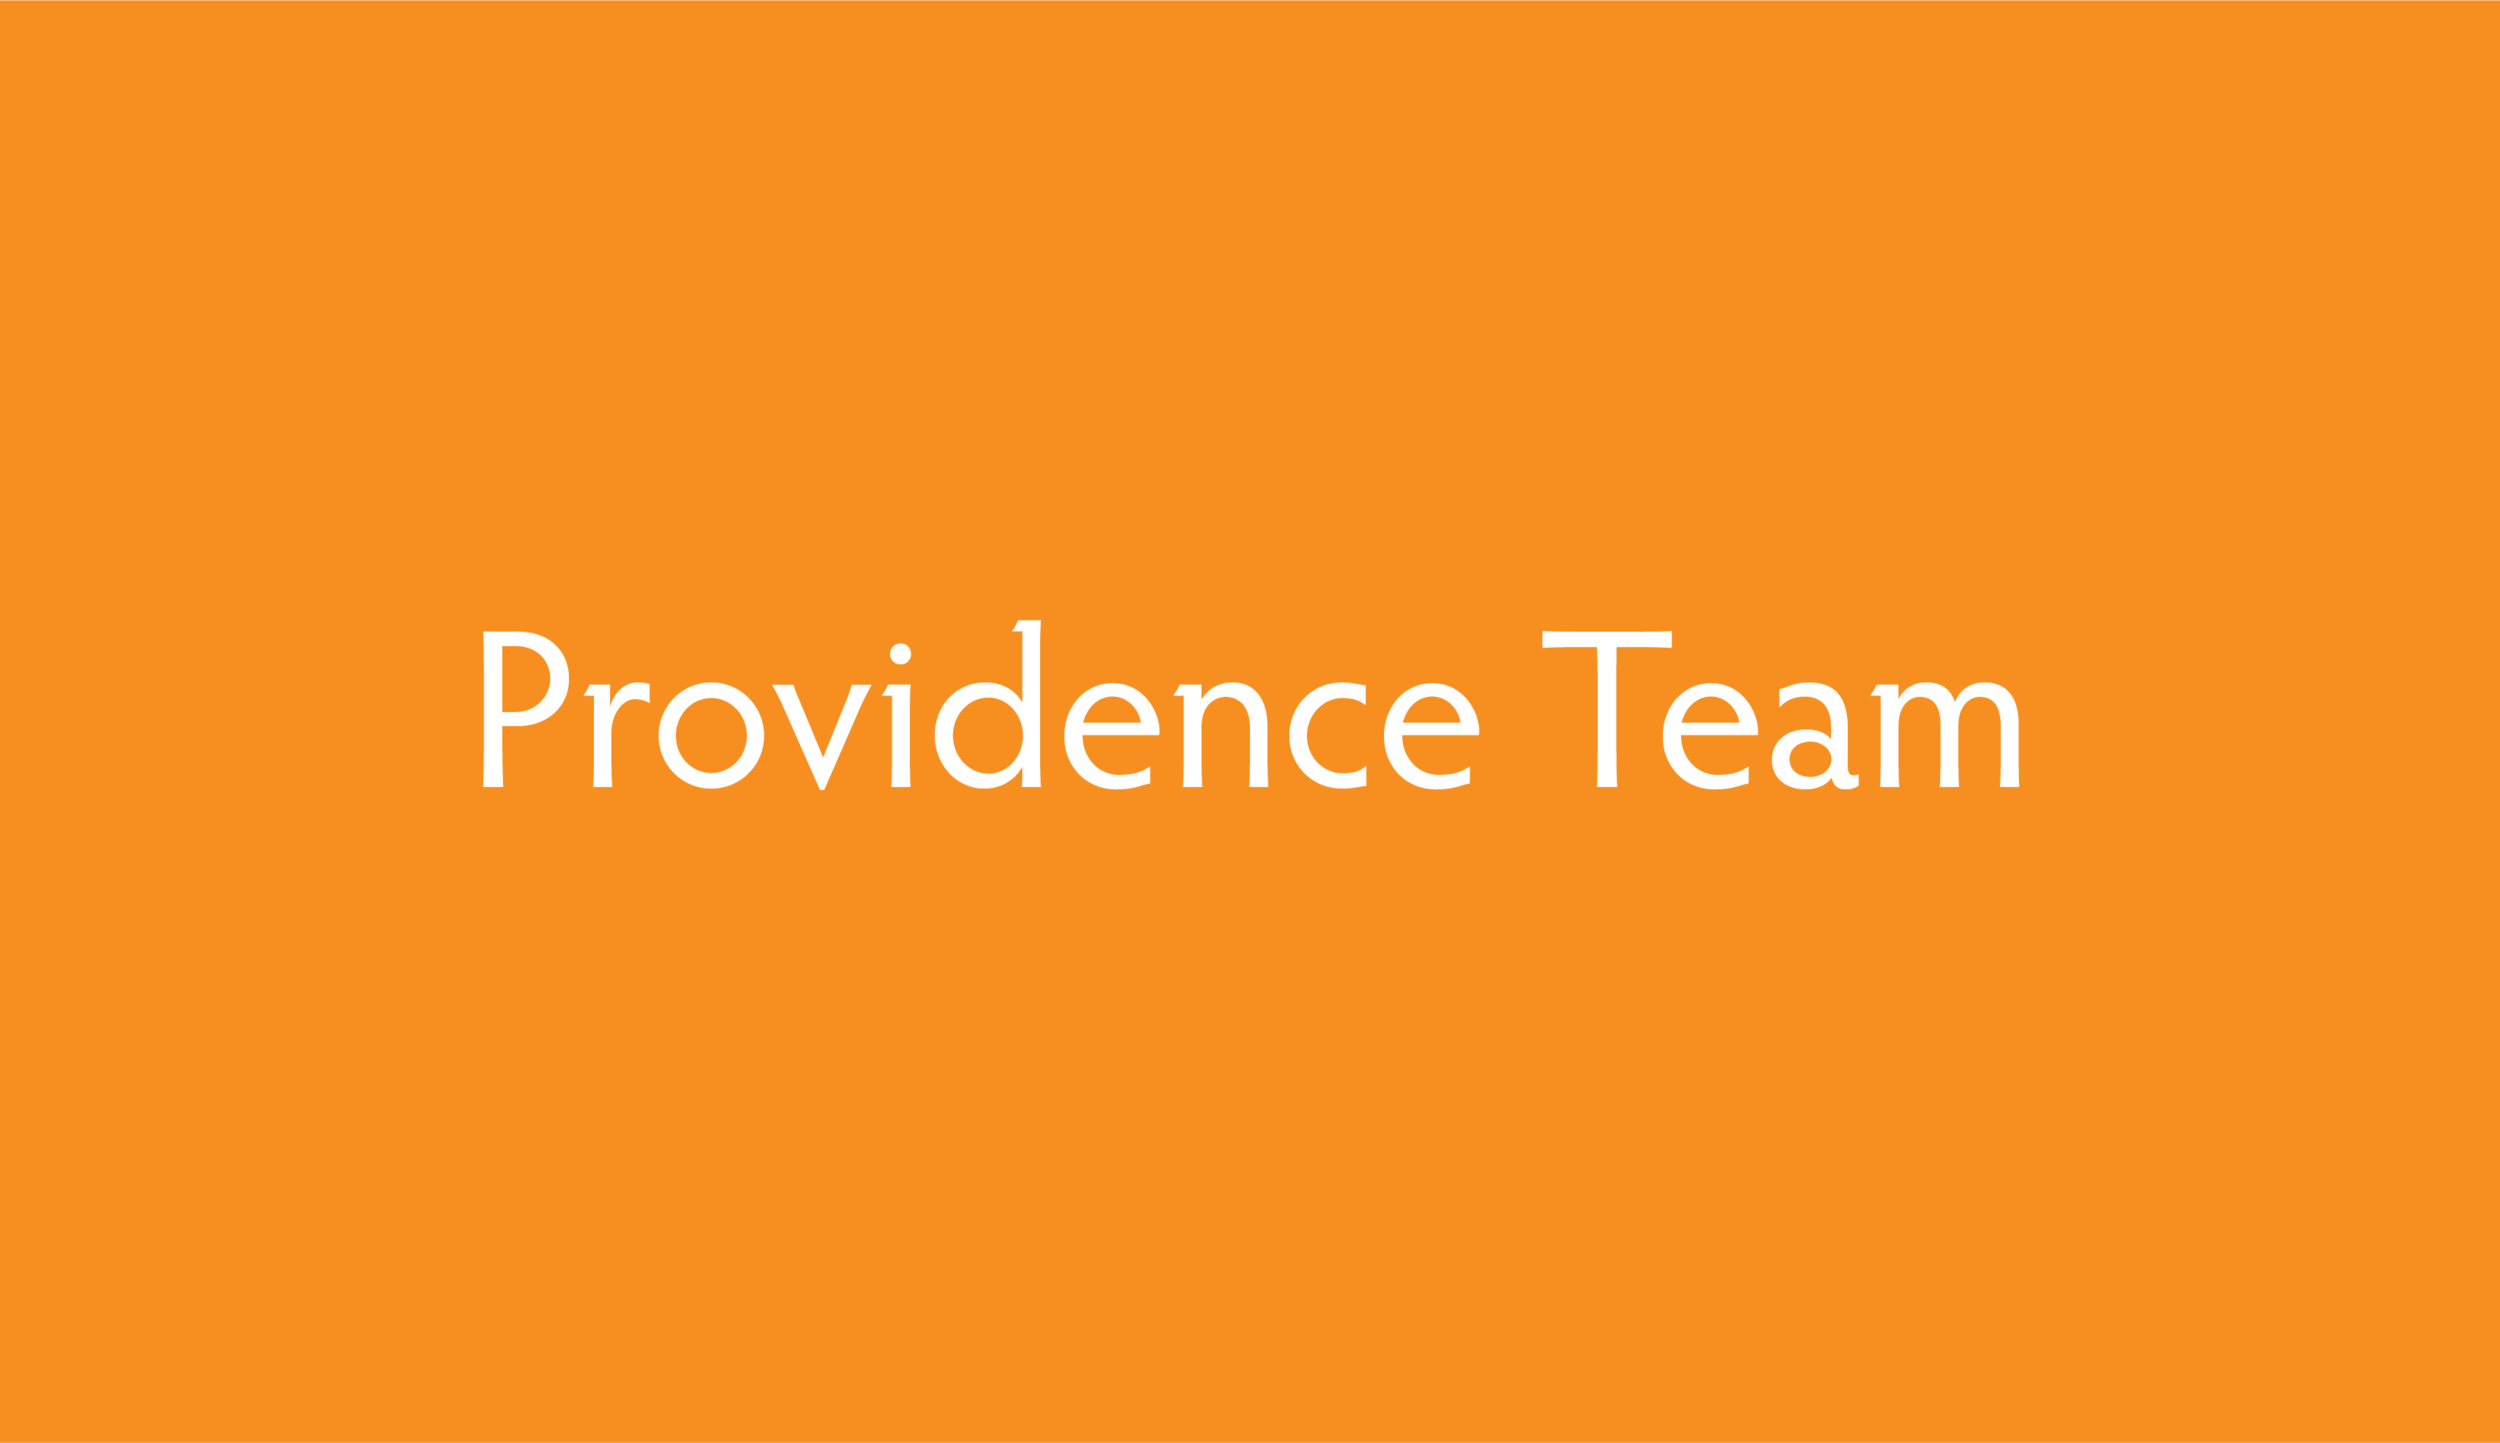 providenceteam.png